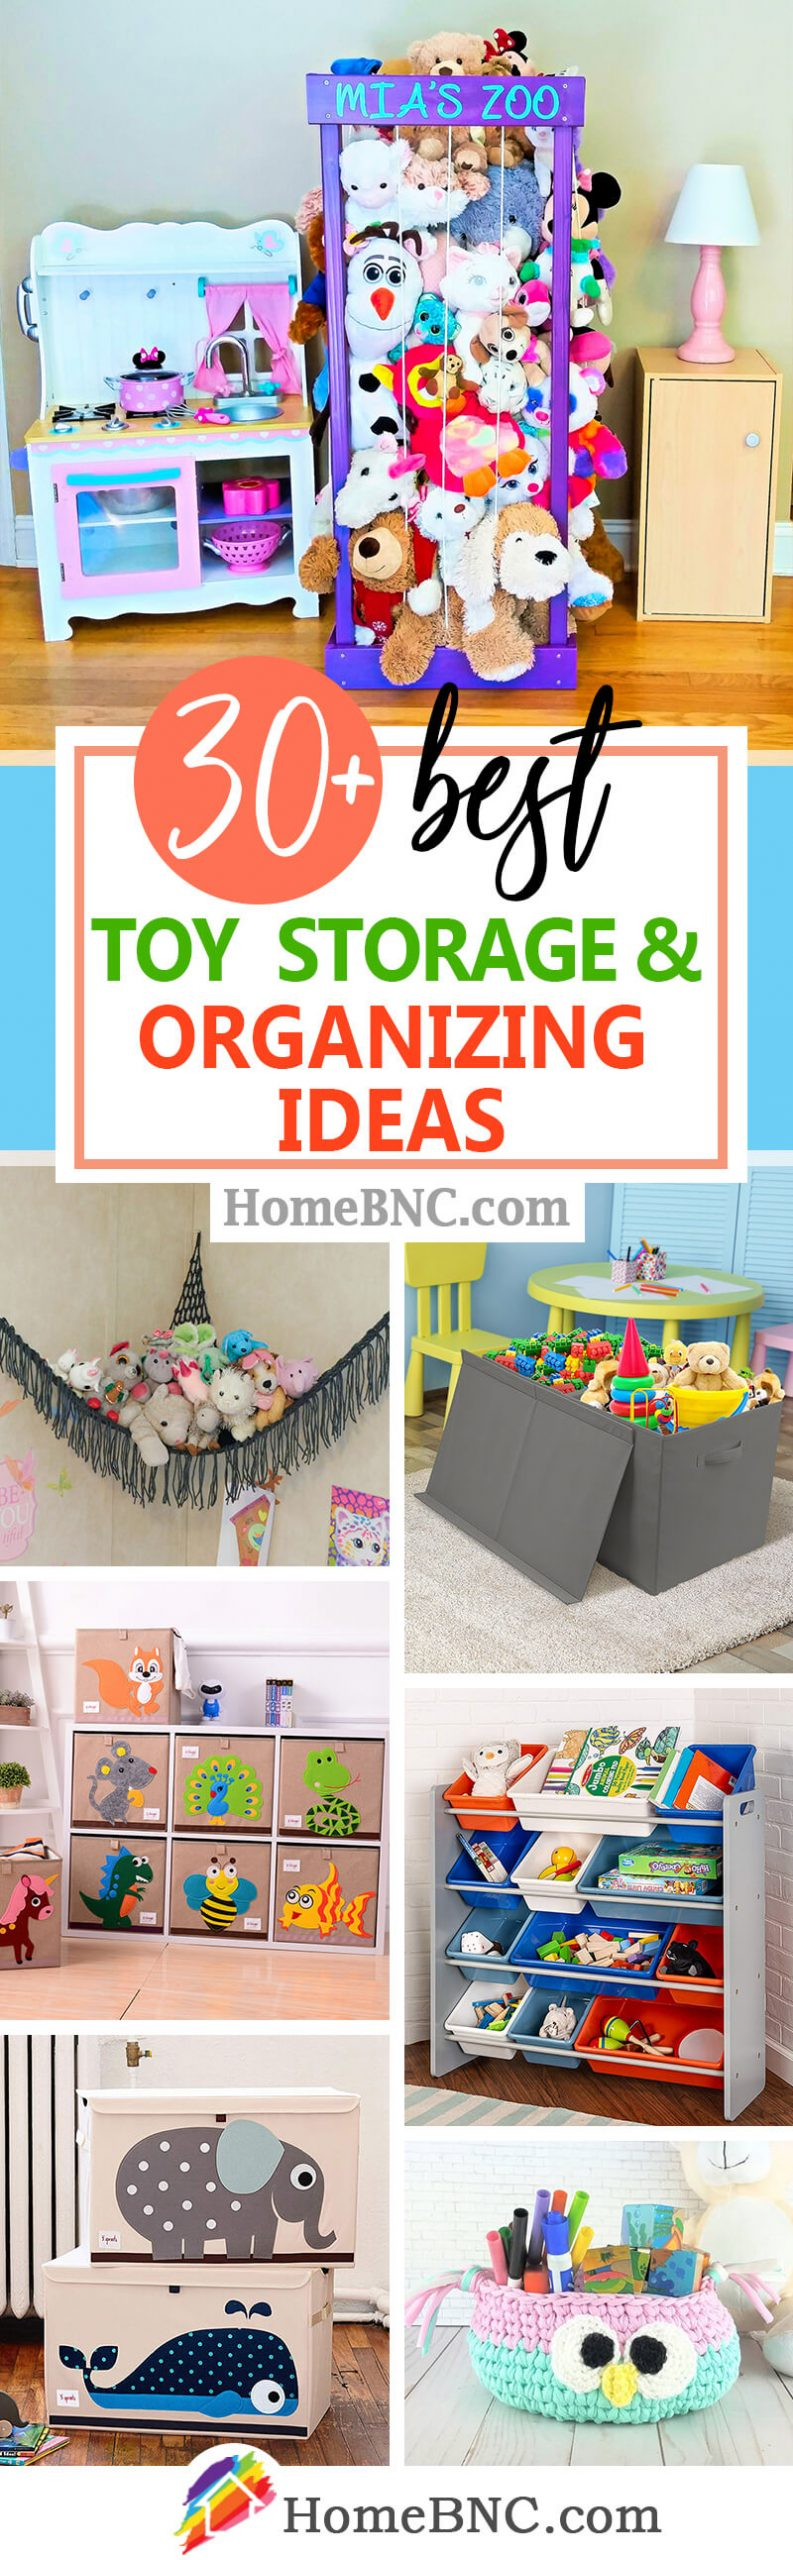 Toy Organizing Ideas